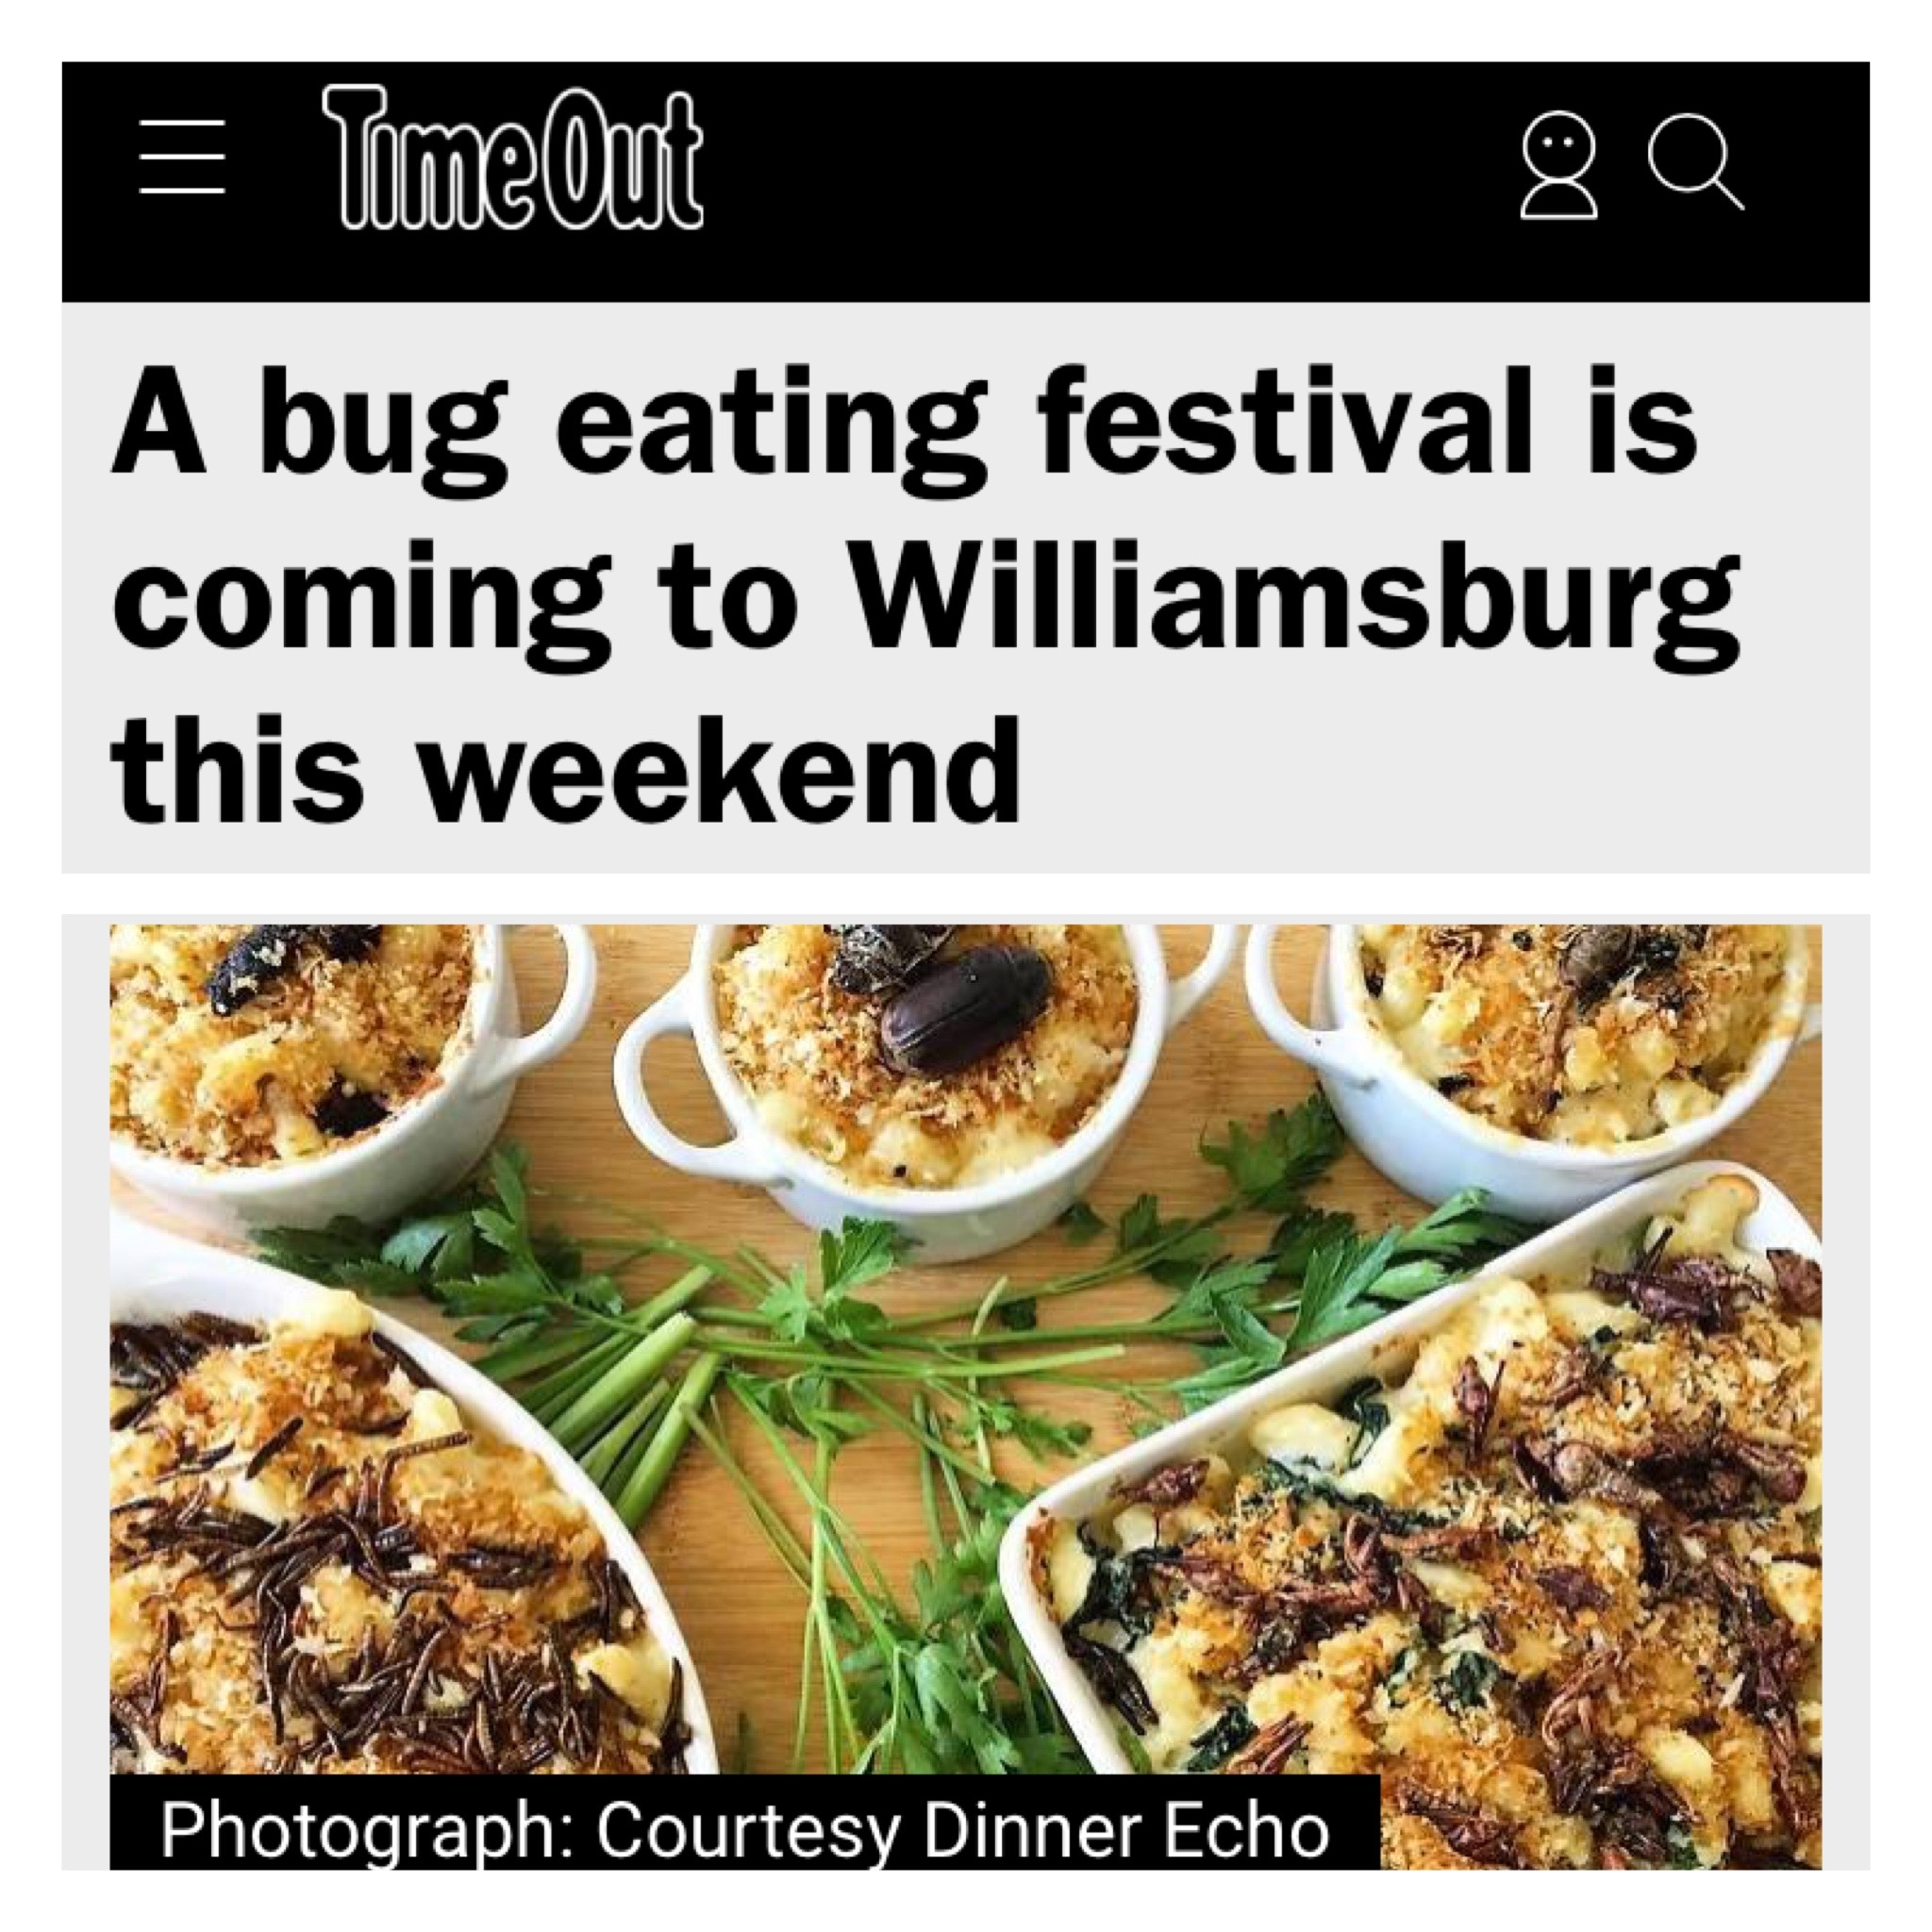 https://www.timeout.com/newyork/blog/a-bug-eating-festival-is-coming-to-williamsburg-this-weekend-082817